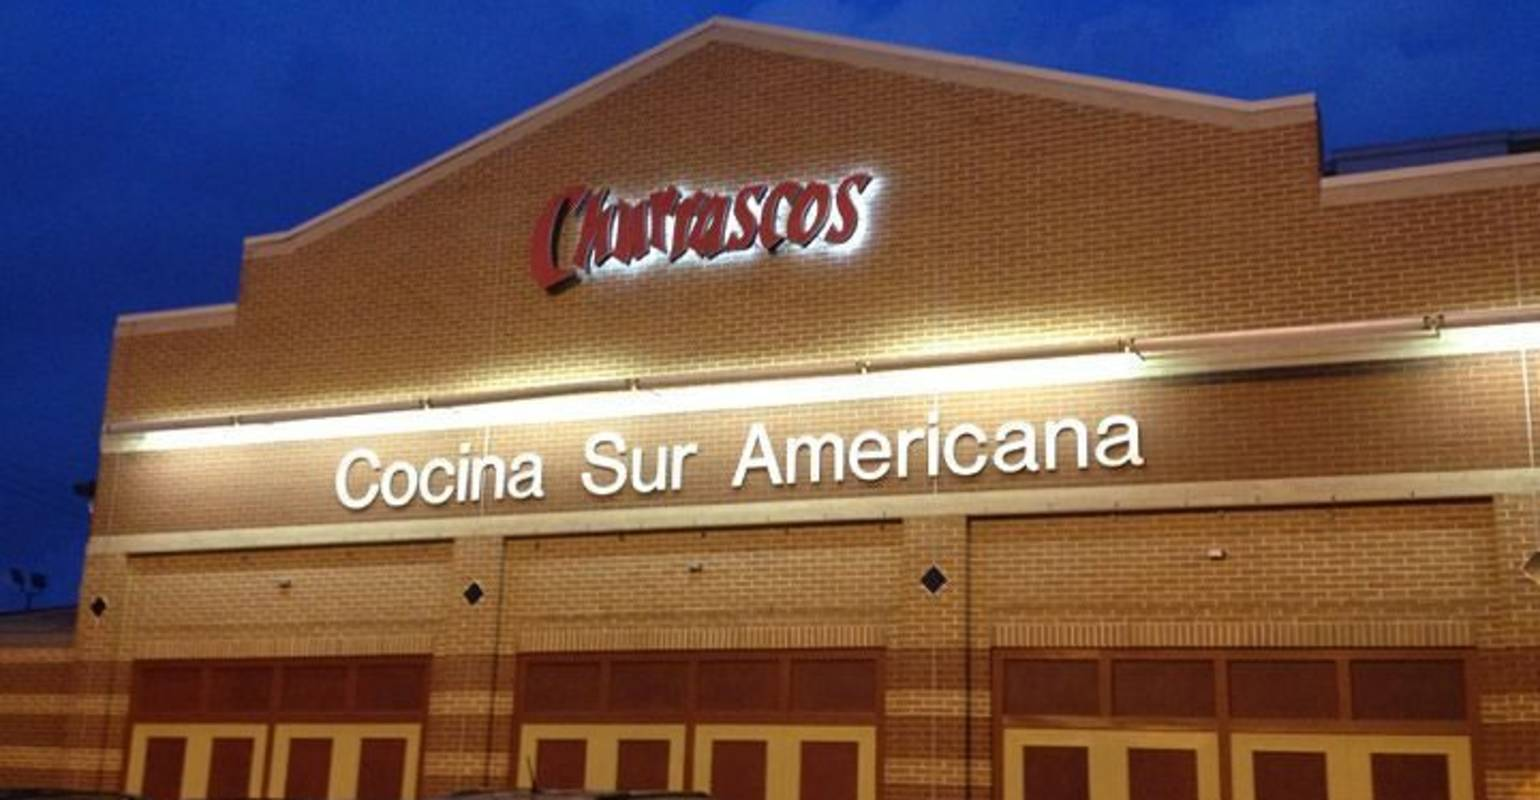 Churrascos (River Oaks)